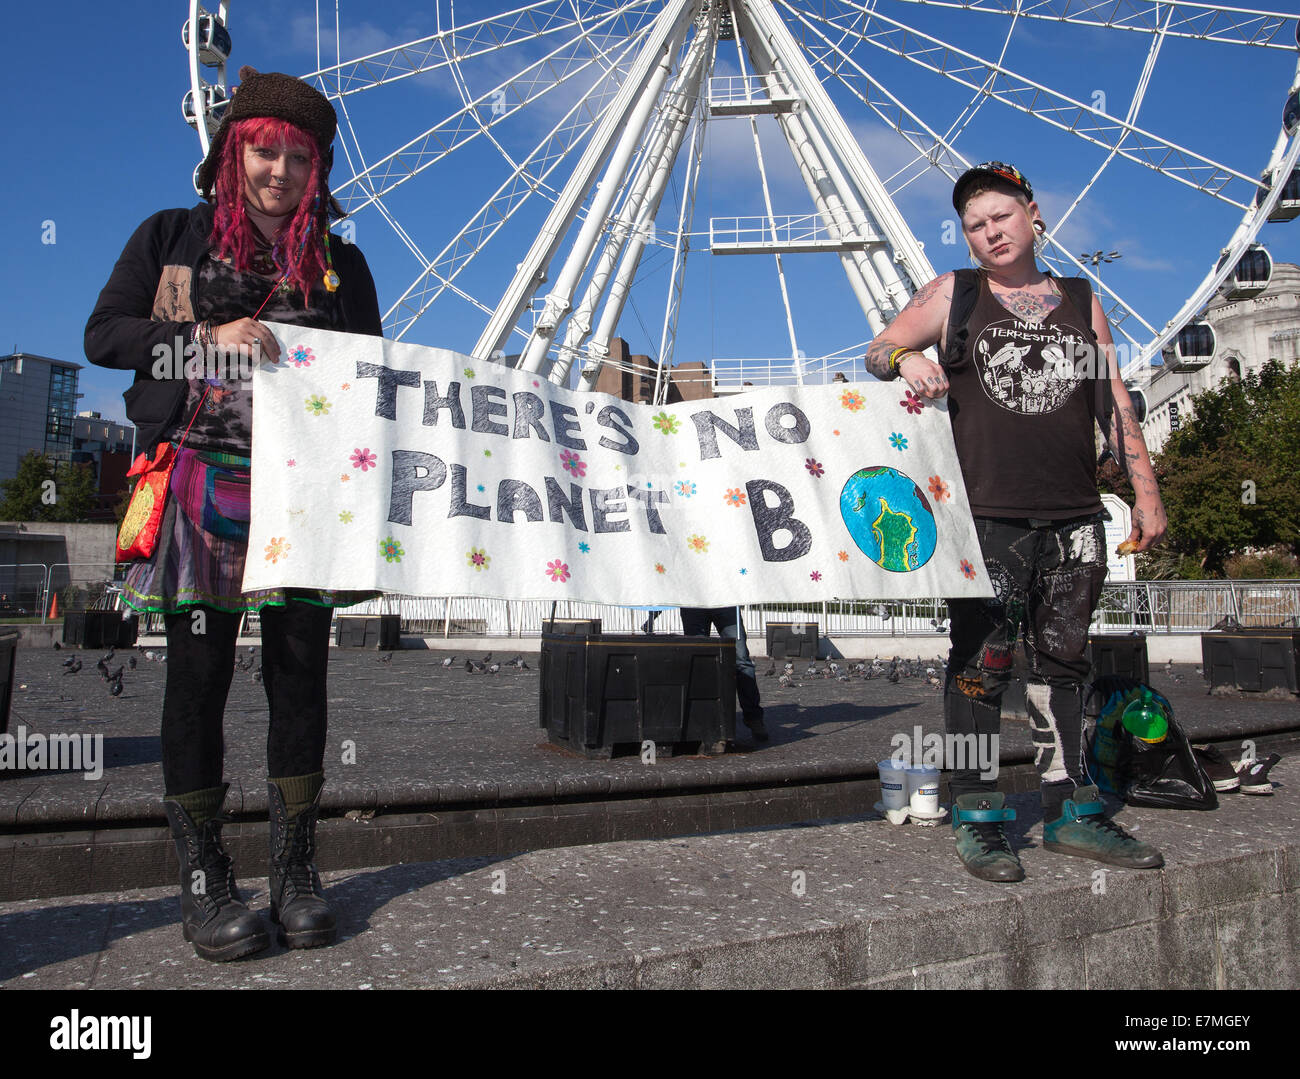 Manchester, UK  21st September, UK. There's no Planet B' sign at the Frack Free Greater Manchester's People's Climate Stock Photo